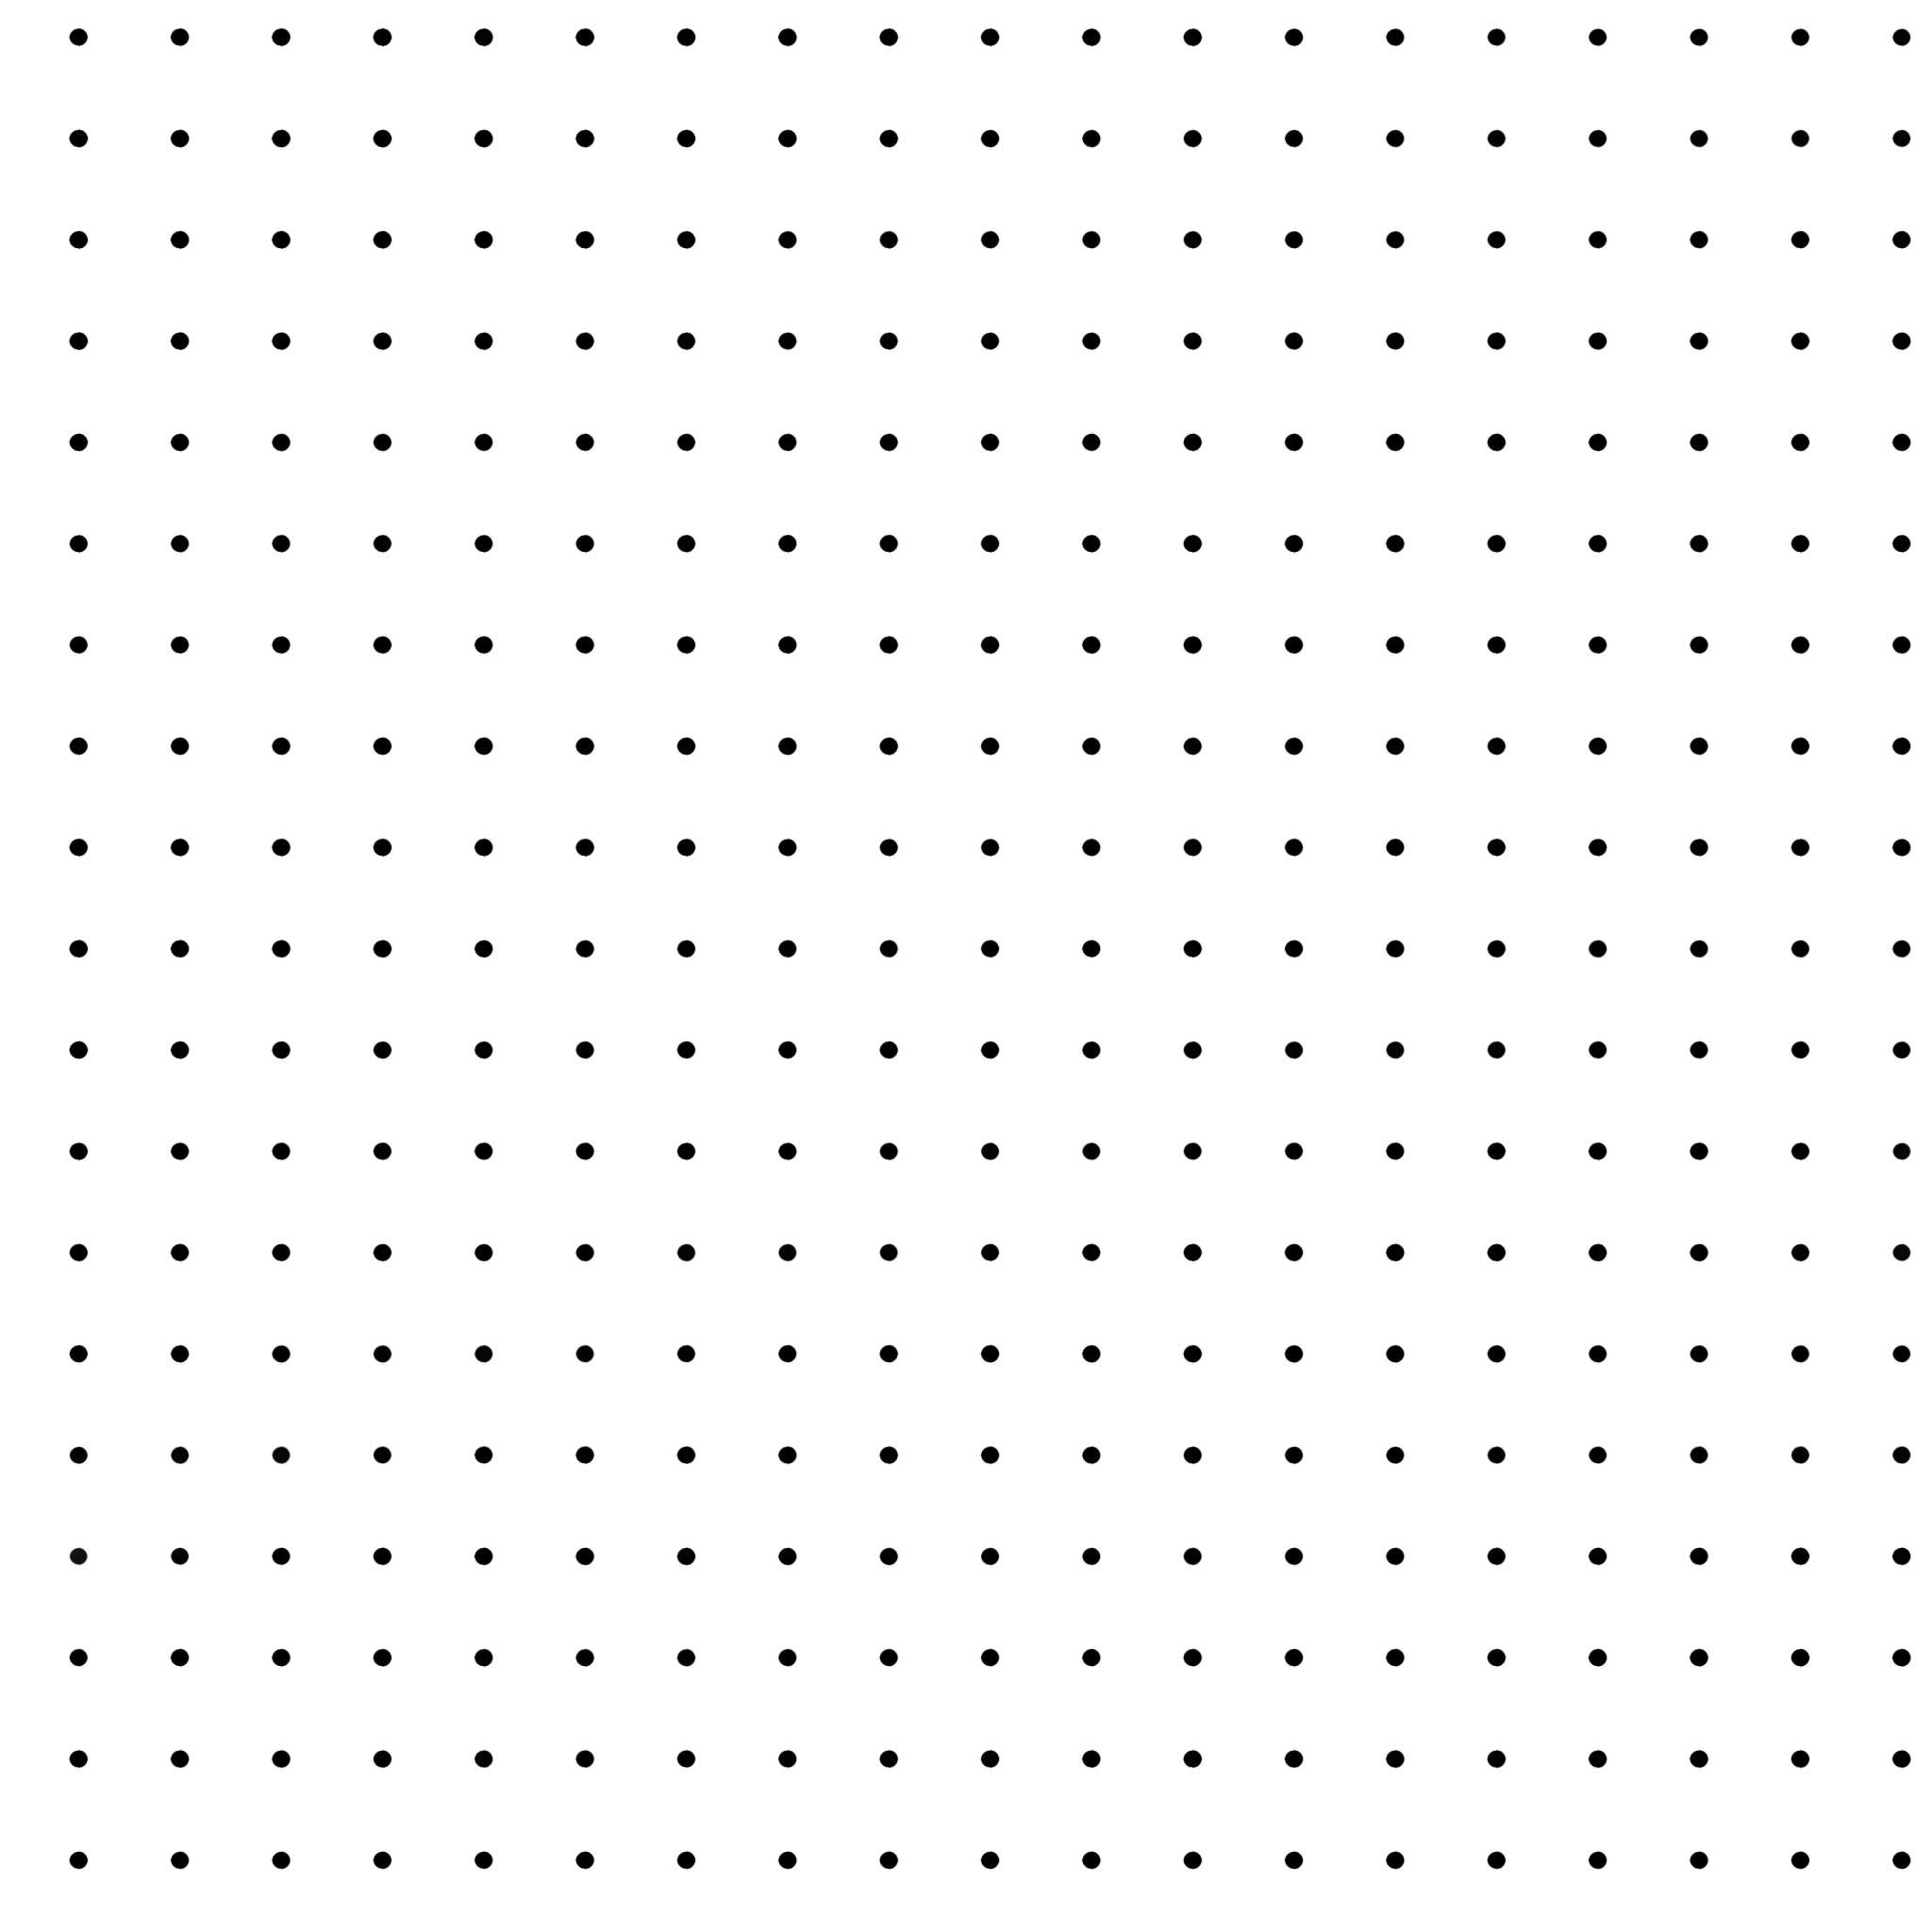 This is an image of Free Printable Dot Grid Paper throughout blank